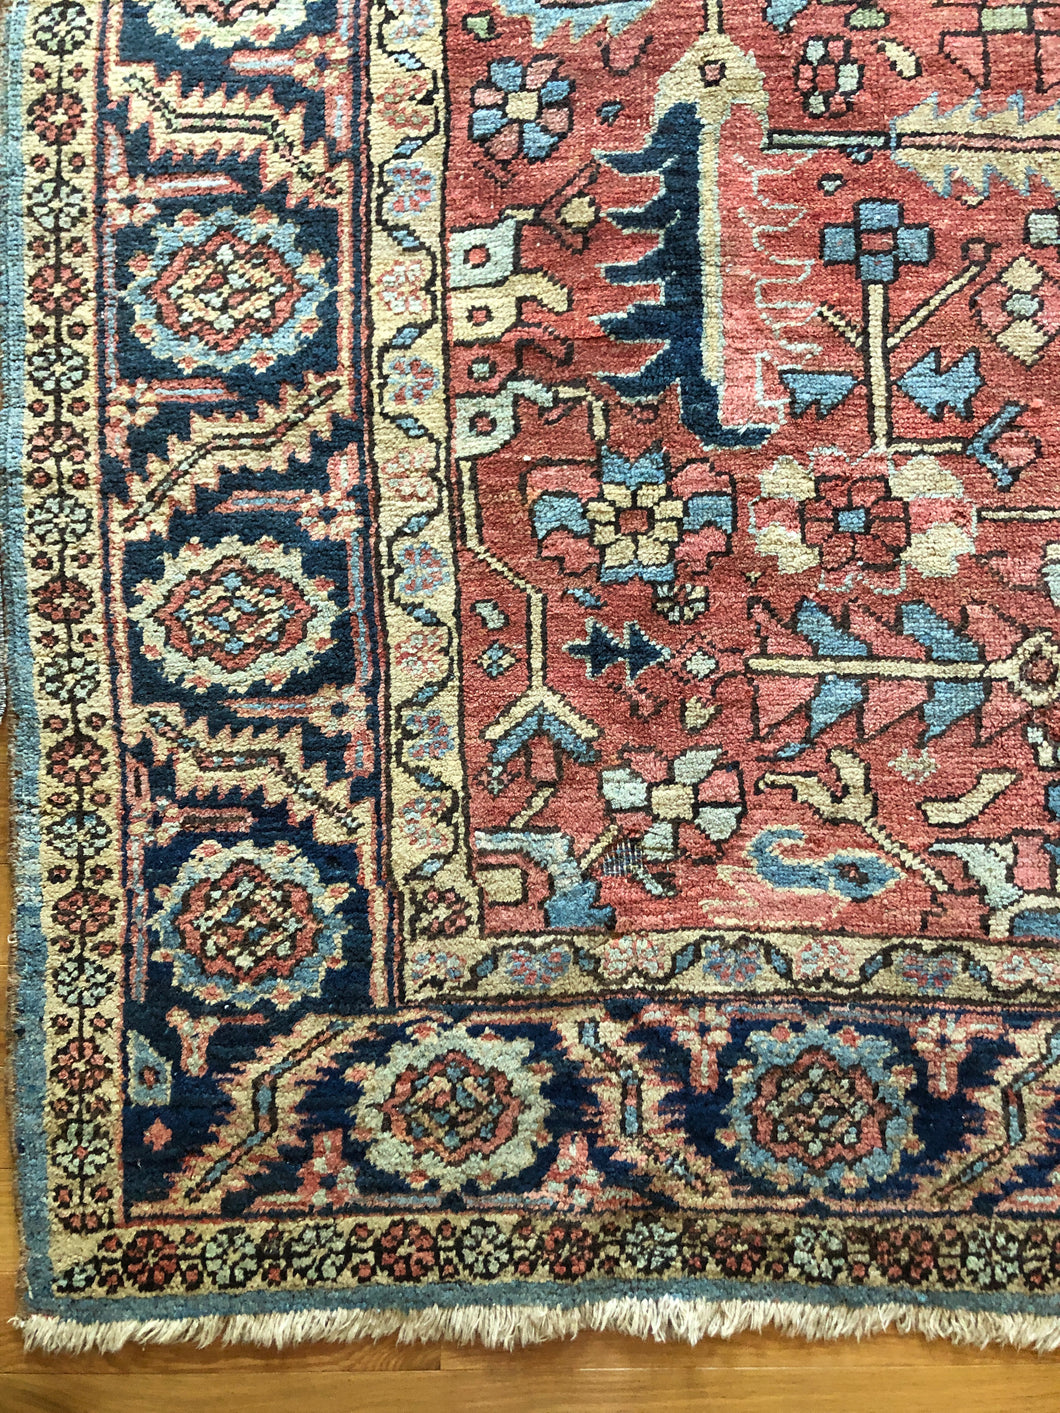 Antique Heriz Serapi area rug